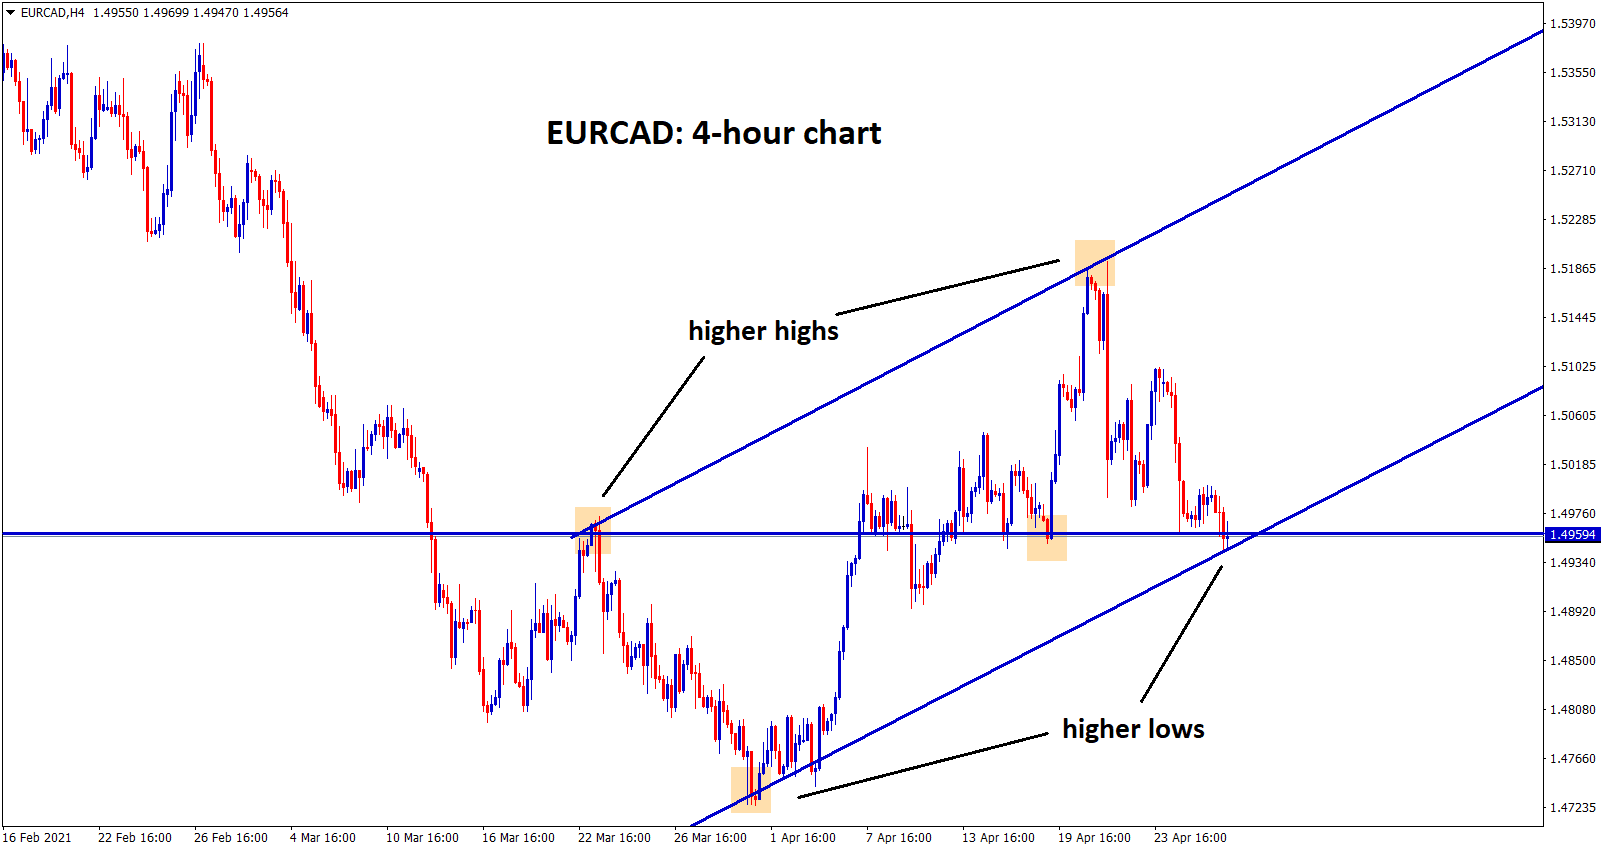 EURCAD at the higher low zone of an uptrend line in h4